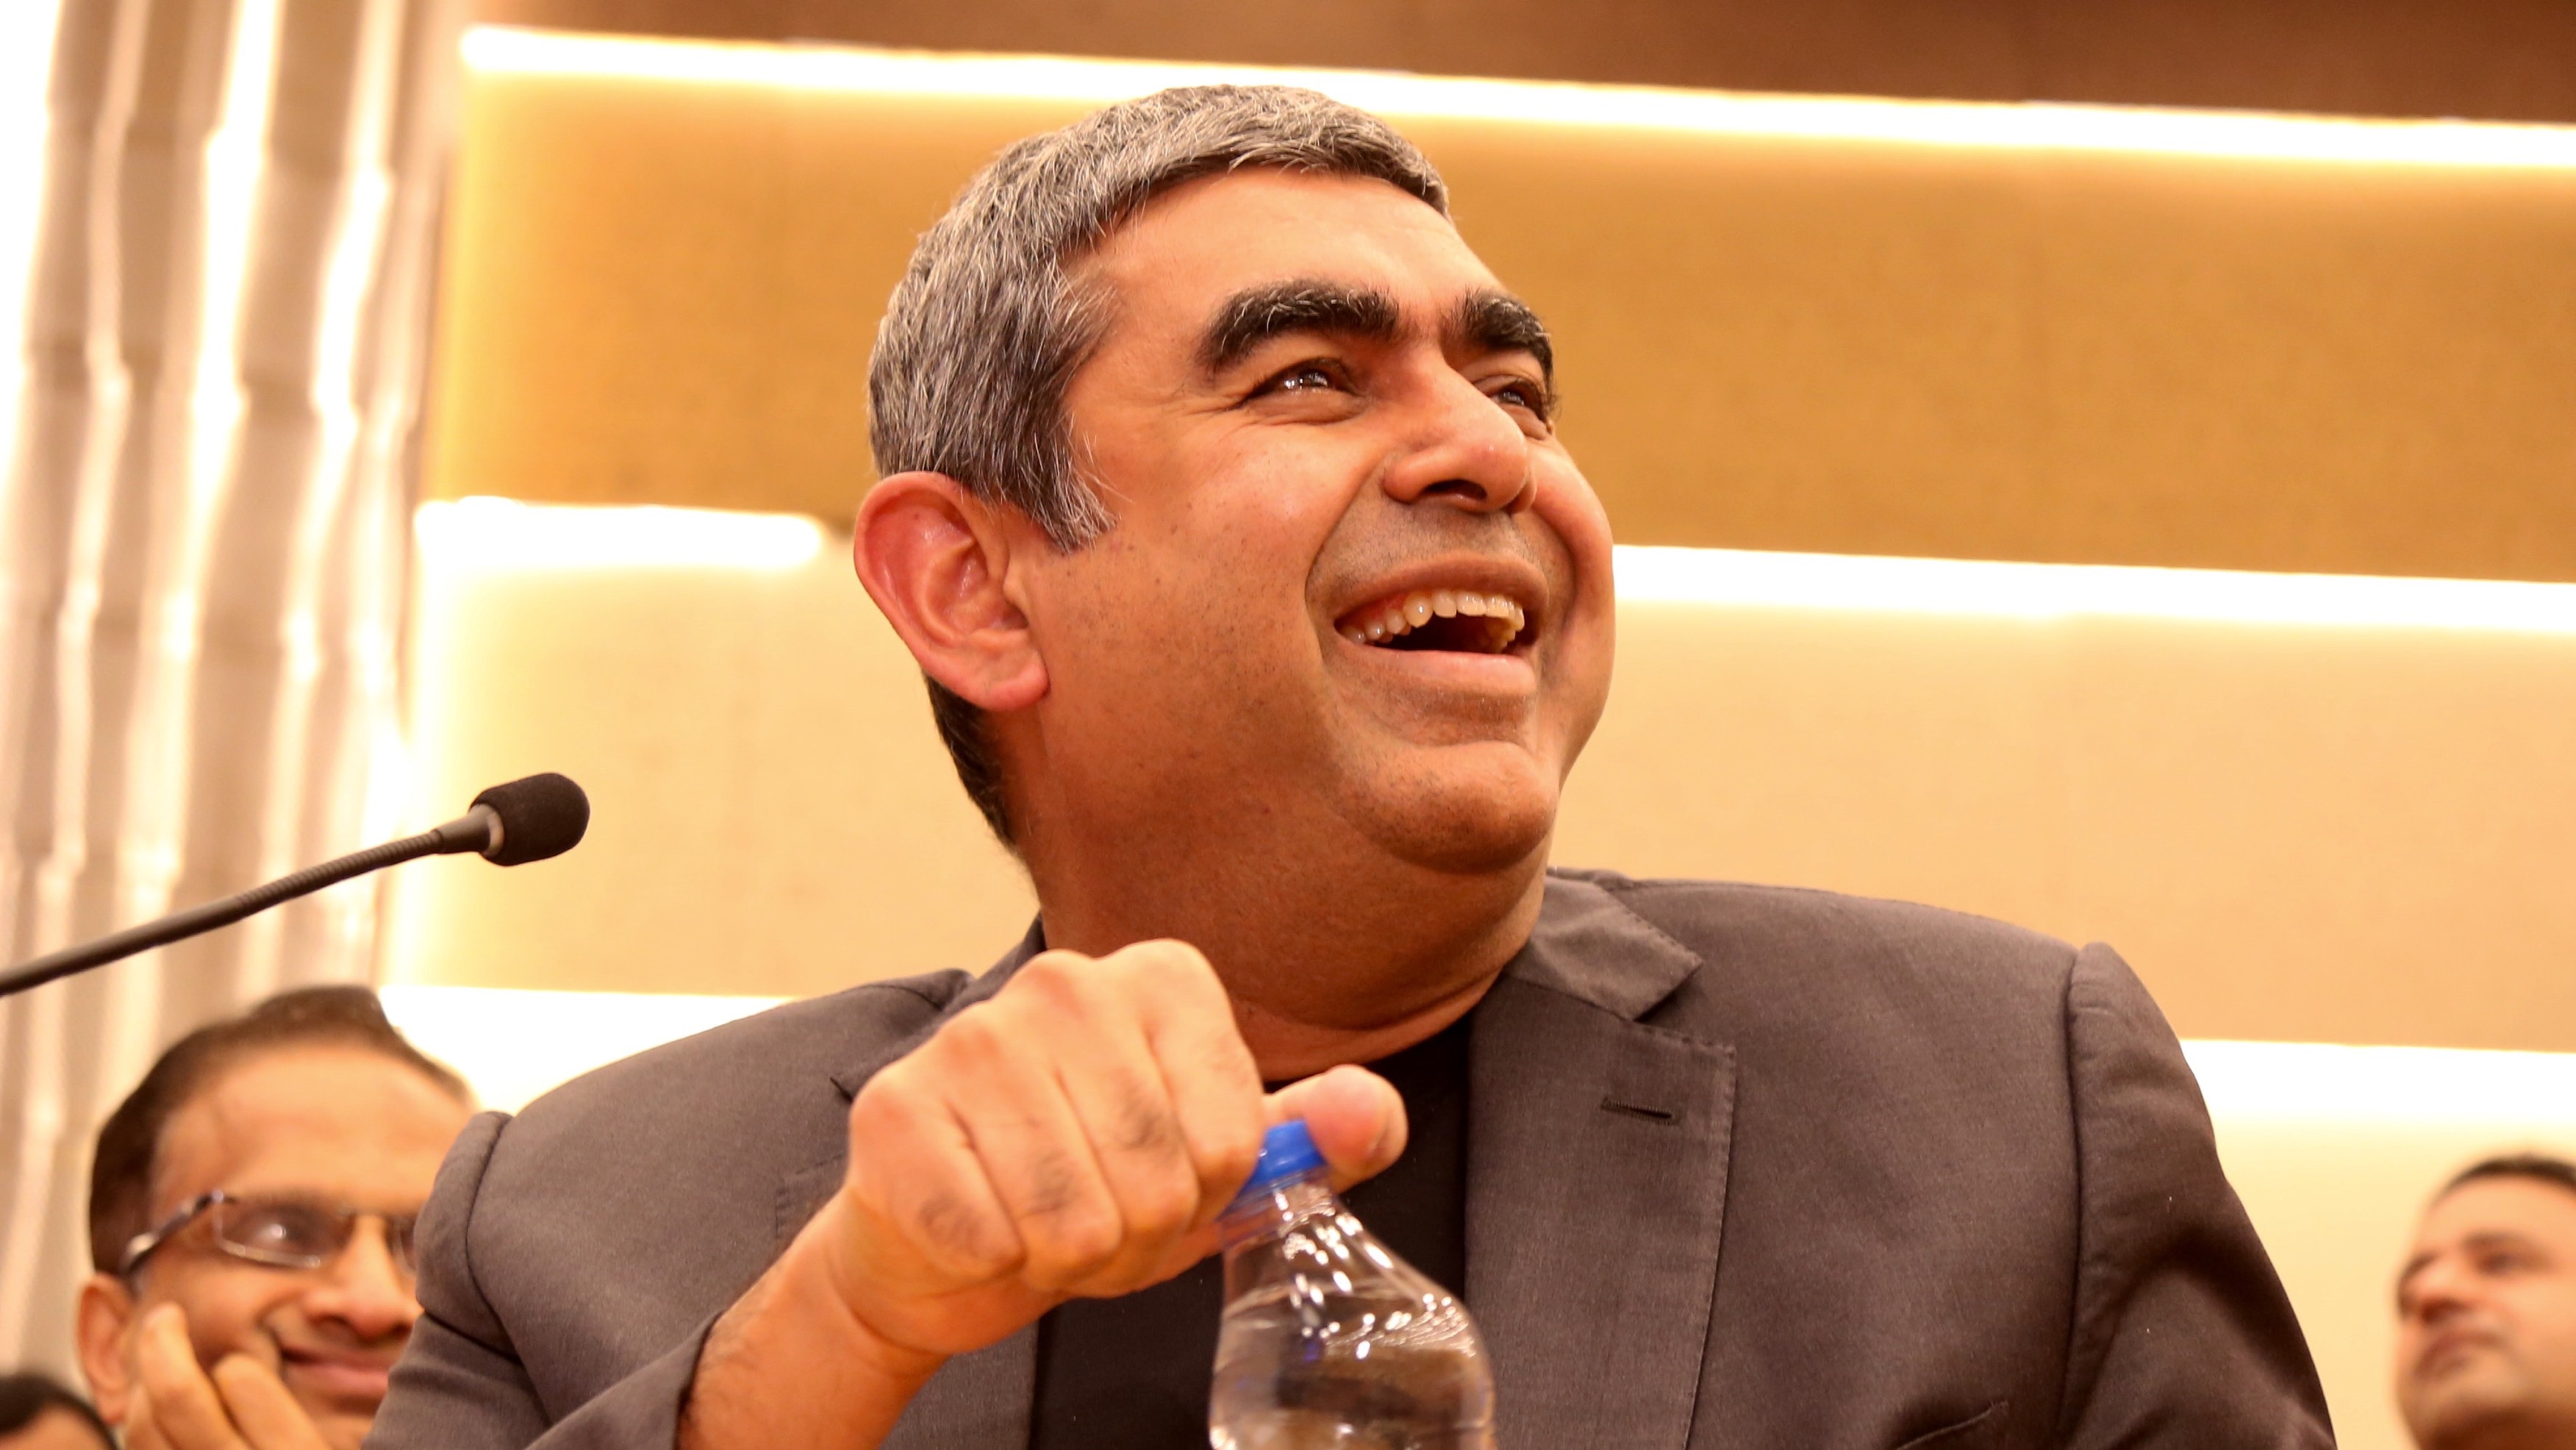 epa05585027 Vishal Sikka, CEO and Managing Director of Indian multinational corporation Infosys Limited, speaks during a press conference to announce the Q2  results at the Infosys headquarters, in Bangalore, India, 14  October 2016. The Indian second largest information technology and consulting company reported net profit 6.1 percent, beating market expectations as it racked up new business client wins.  EPA/JAGADEESH NV